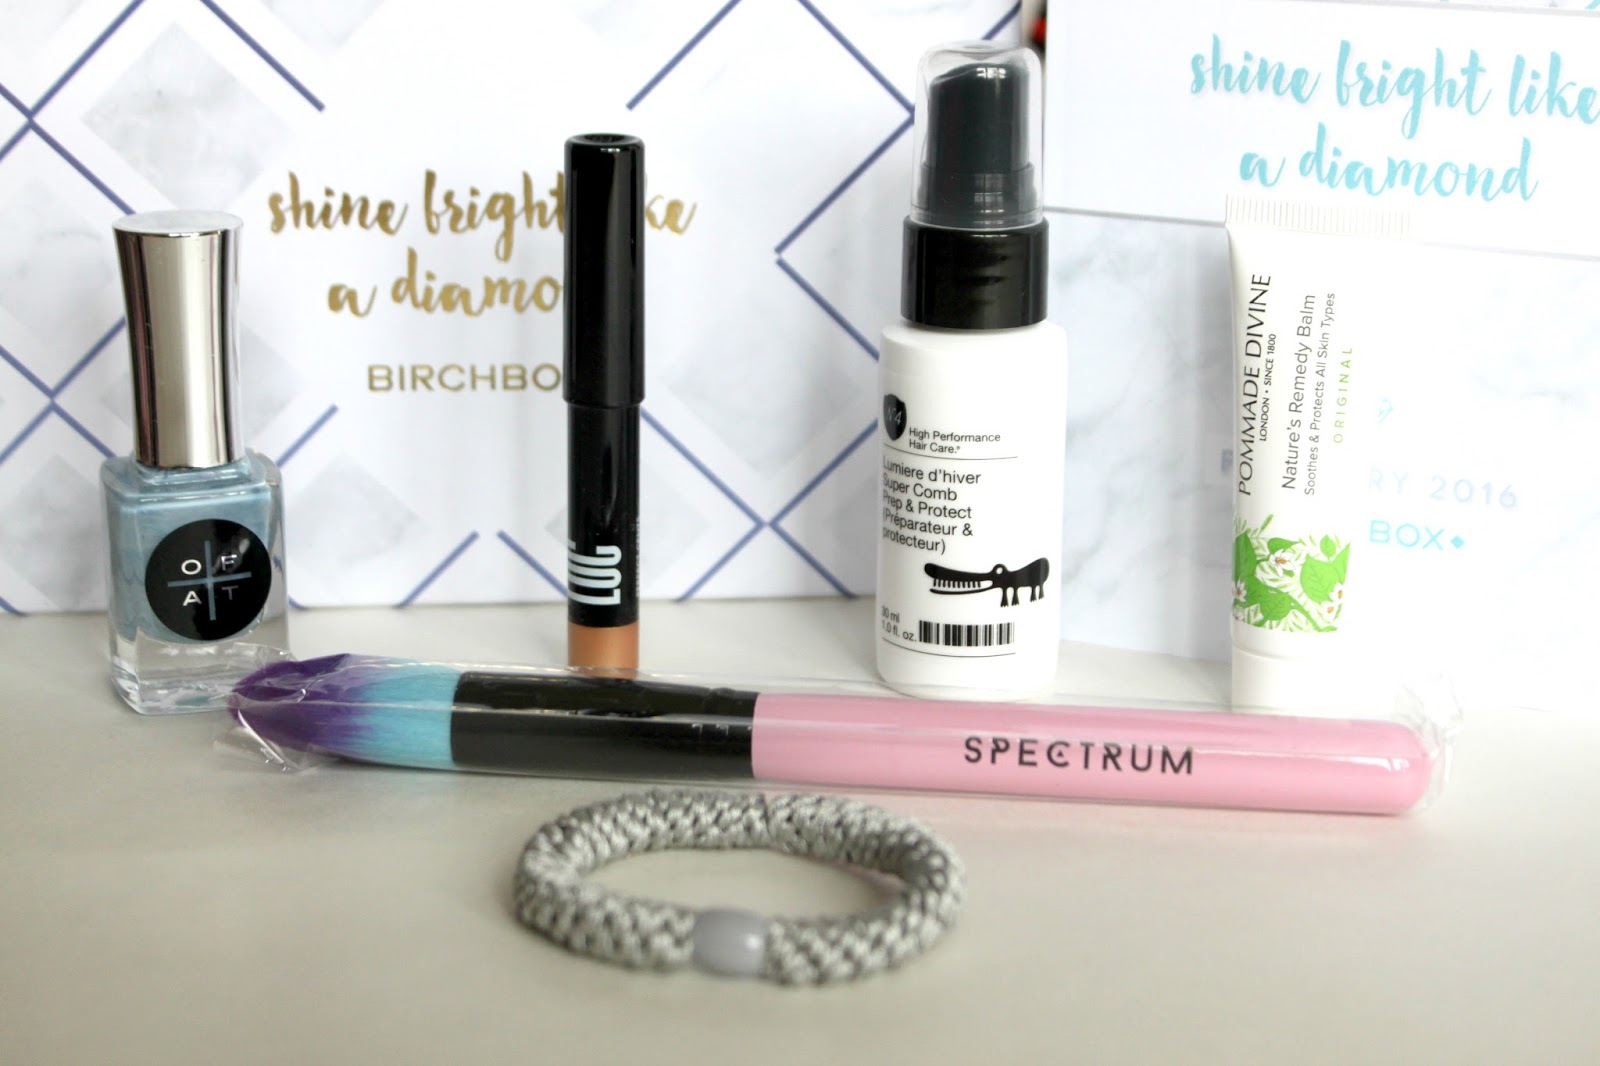 Unboxed February Birchbox UK Reveal Products